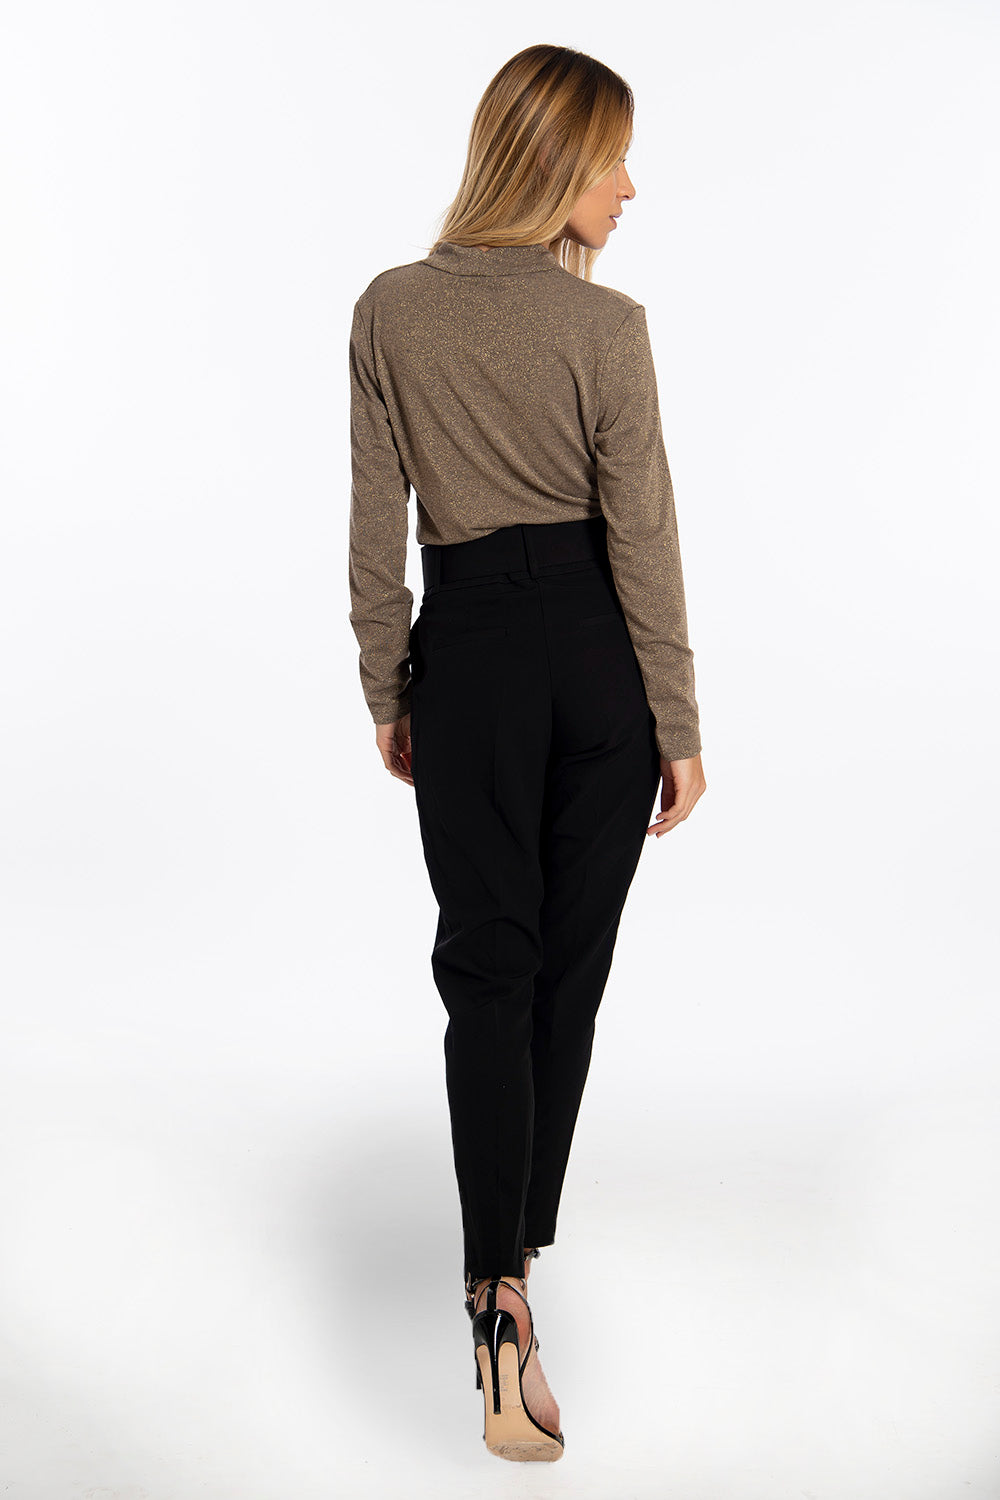 NúNu suited high waist trousers with belt